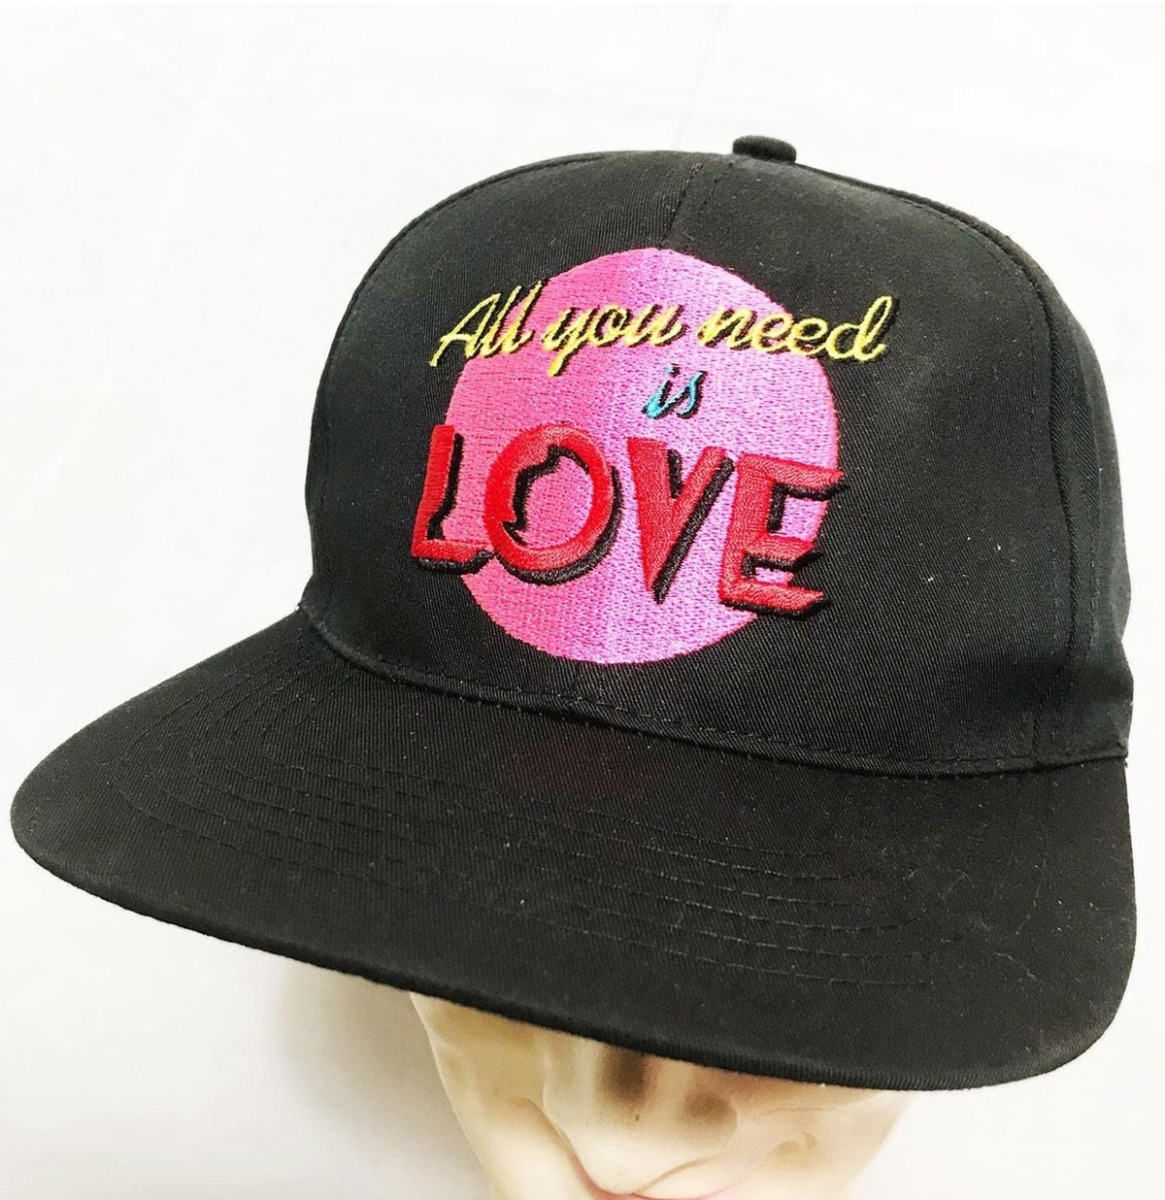 All You Need Is Love Cap